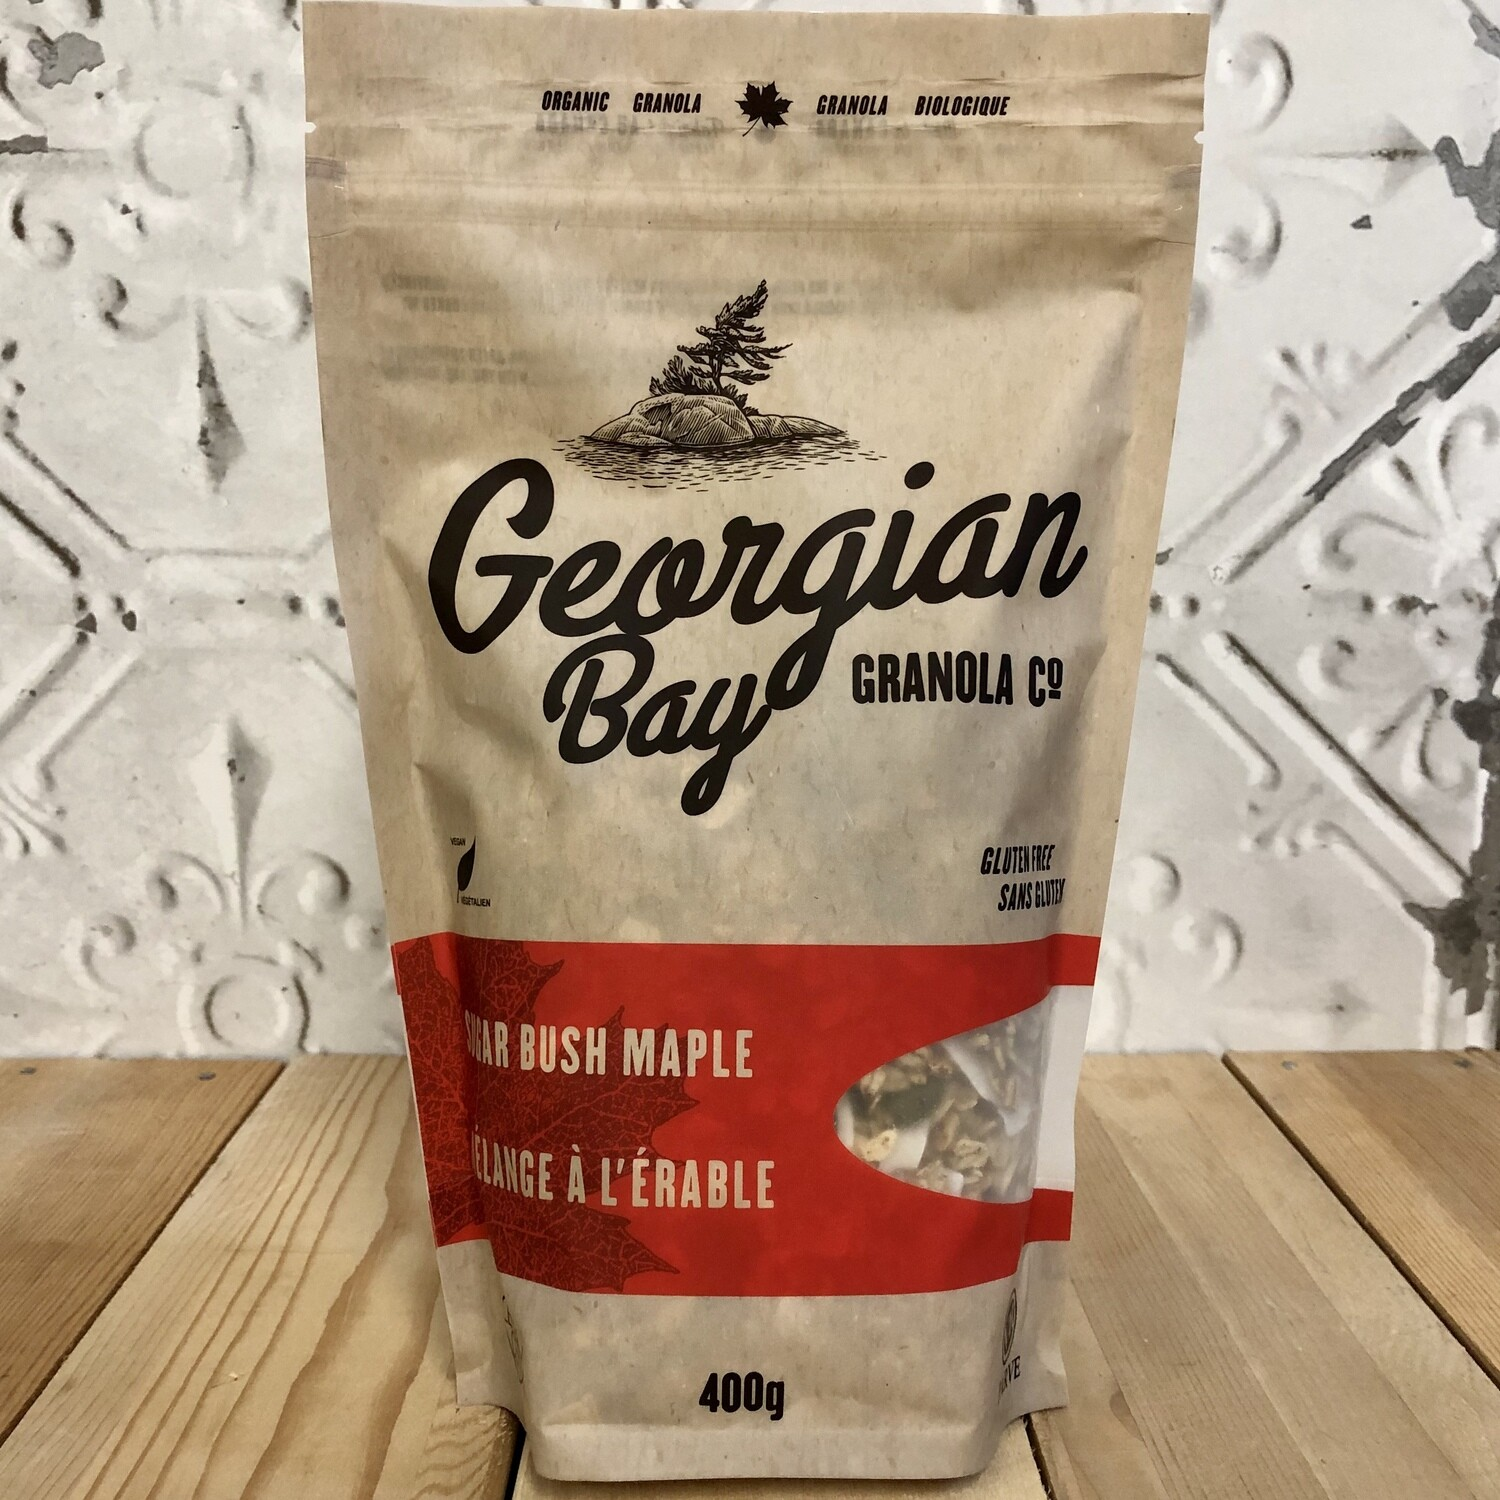 GEORGIAN BAY Granola Sugar Bush Maple